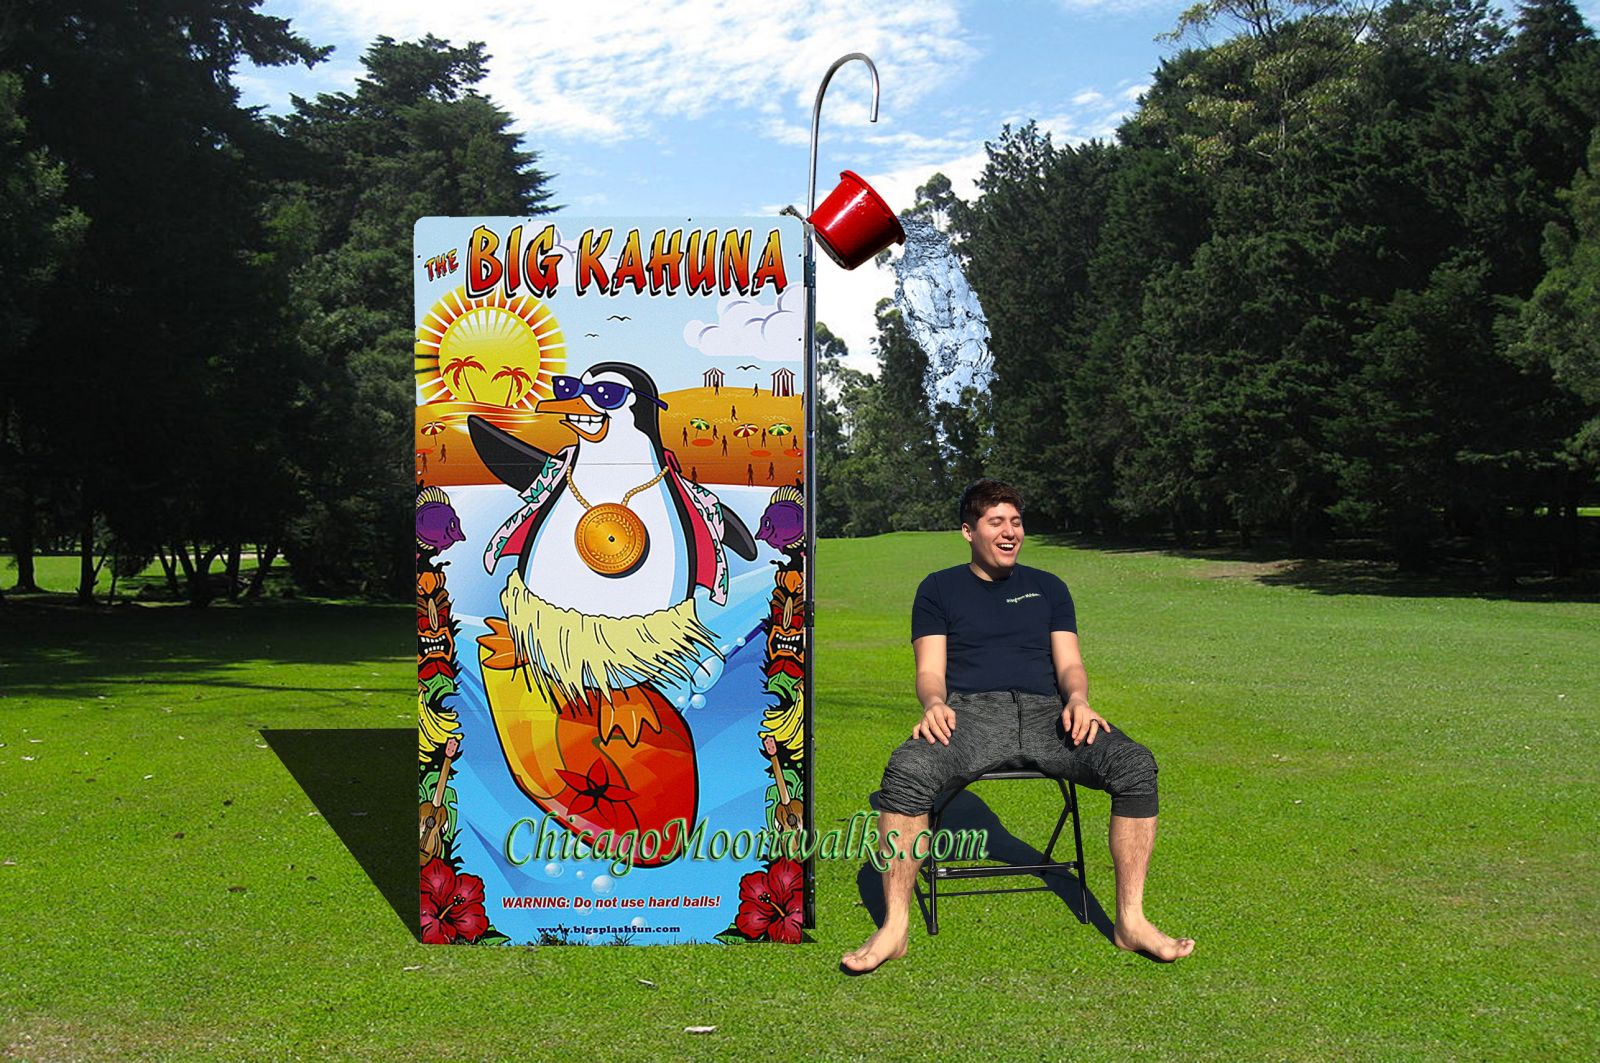 Big Kahuna Dunk Tank Alternative, Great for any celebration, party, picnic, or family reunion